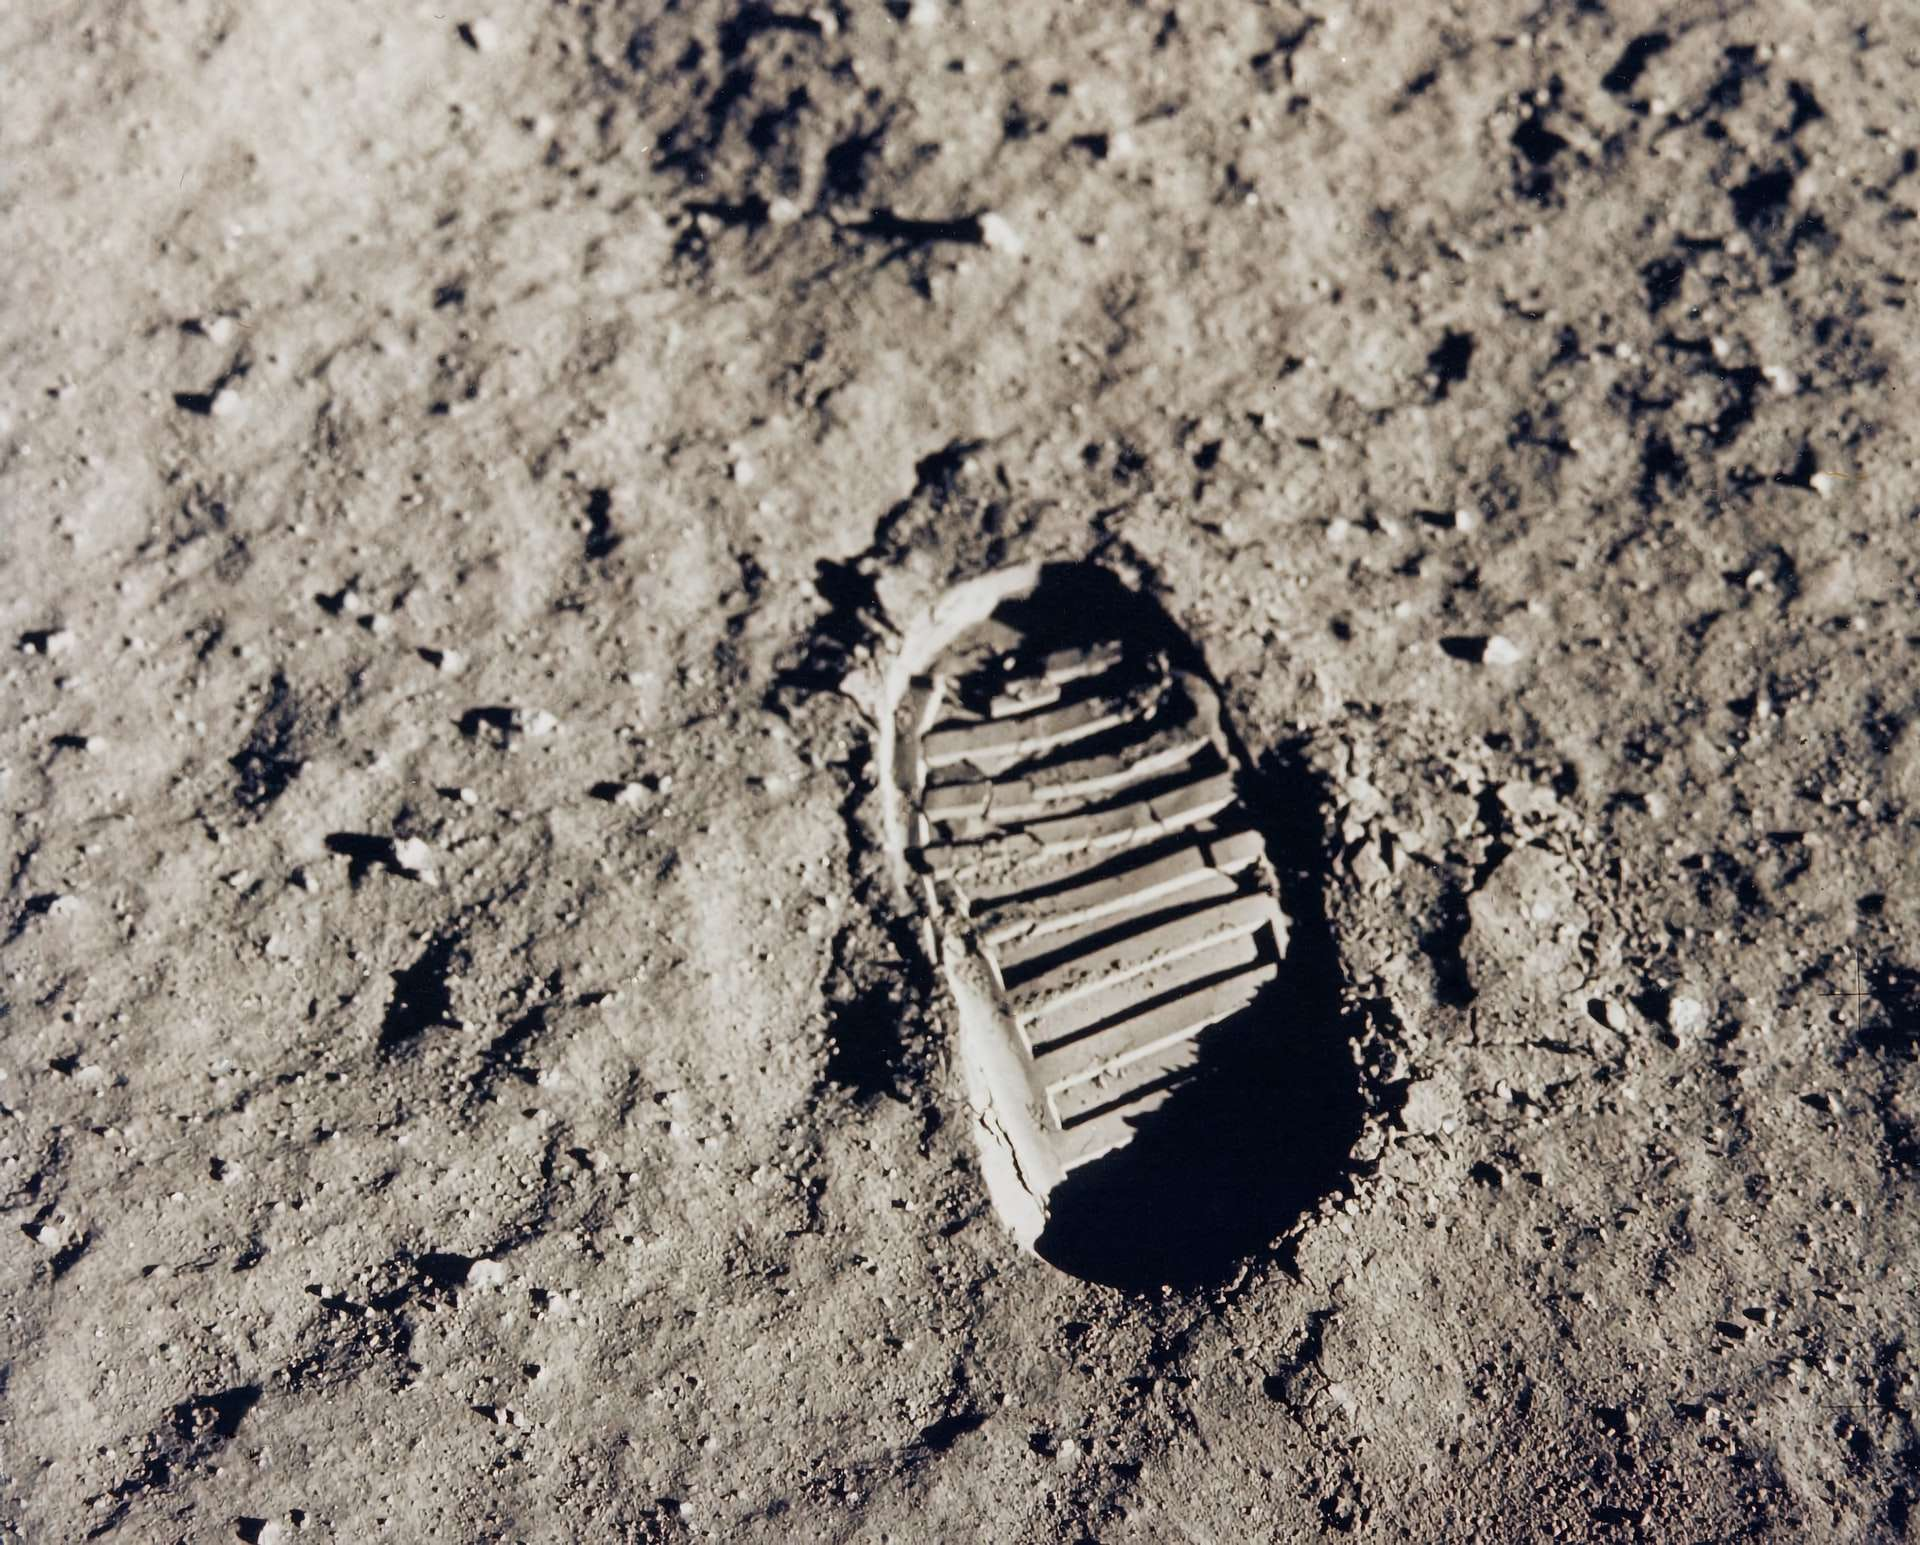 One step which can sometimes feel like a giant leap